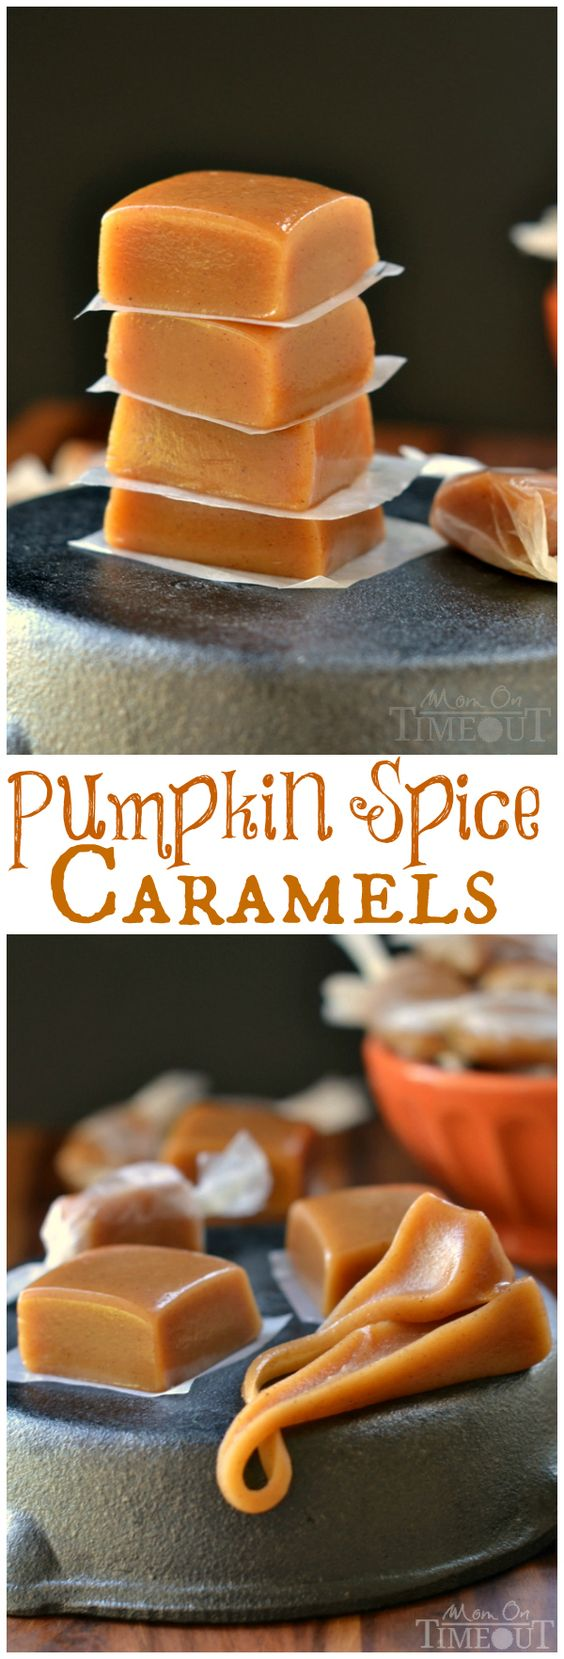 Pumpkin Spice Recipes: Pumpkin Spice Caramels